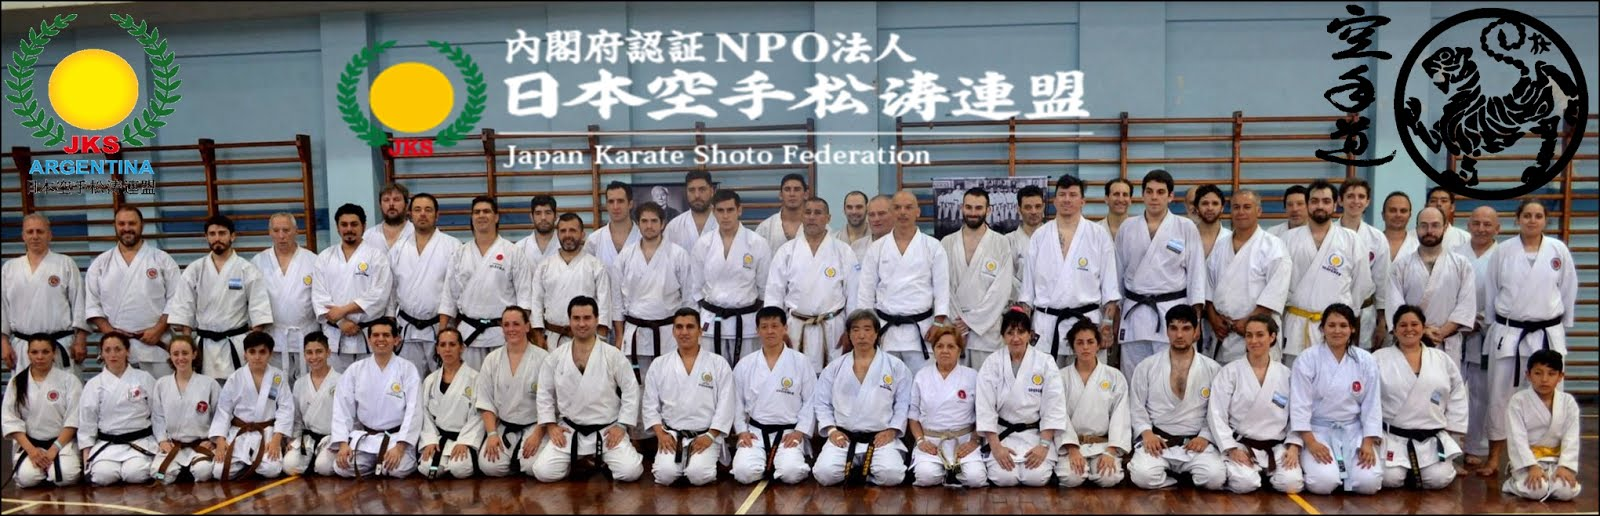 Shotokan Argentina JKS - japan karate Shoto renmei